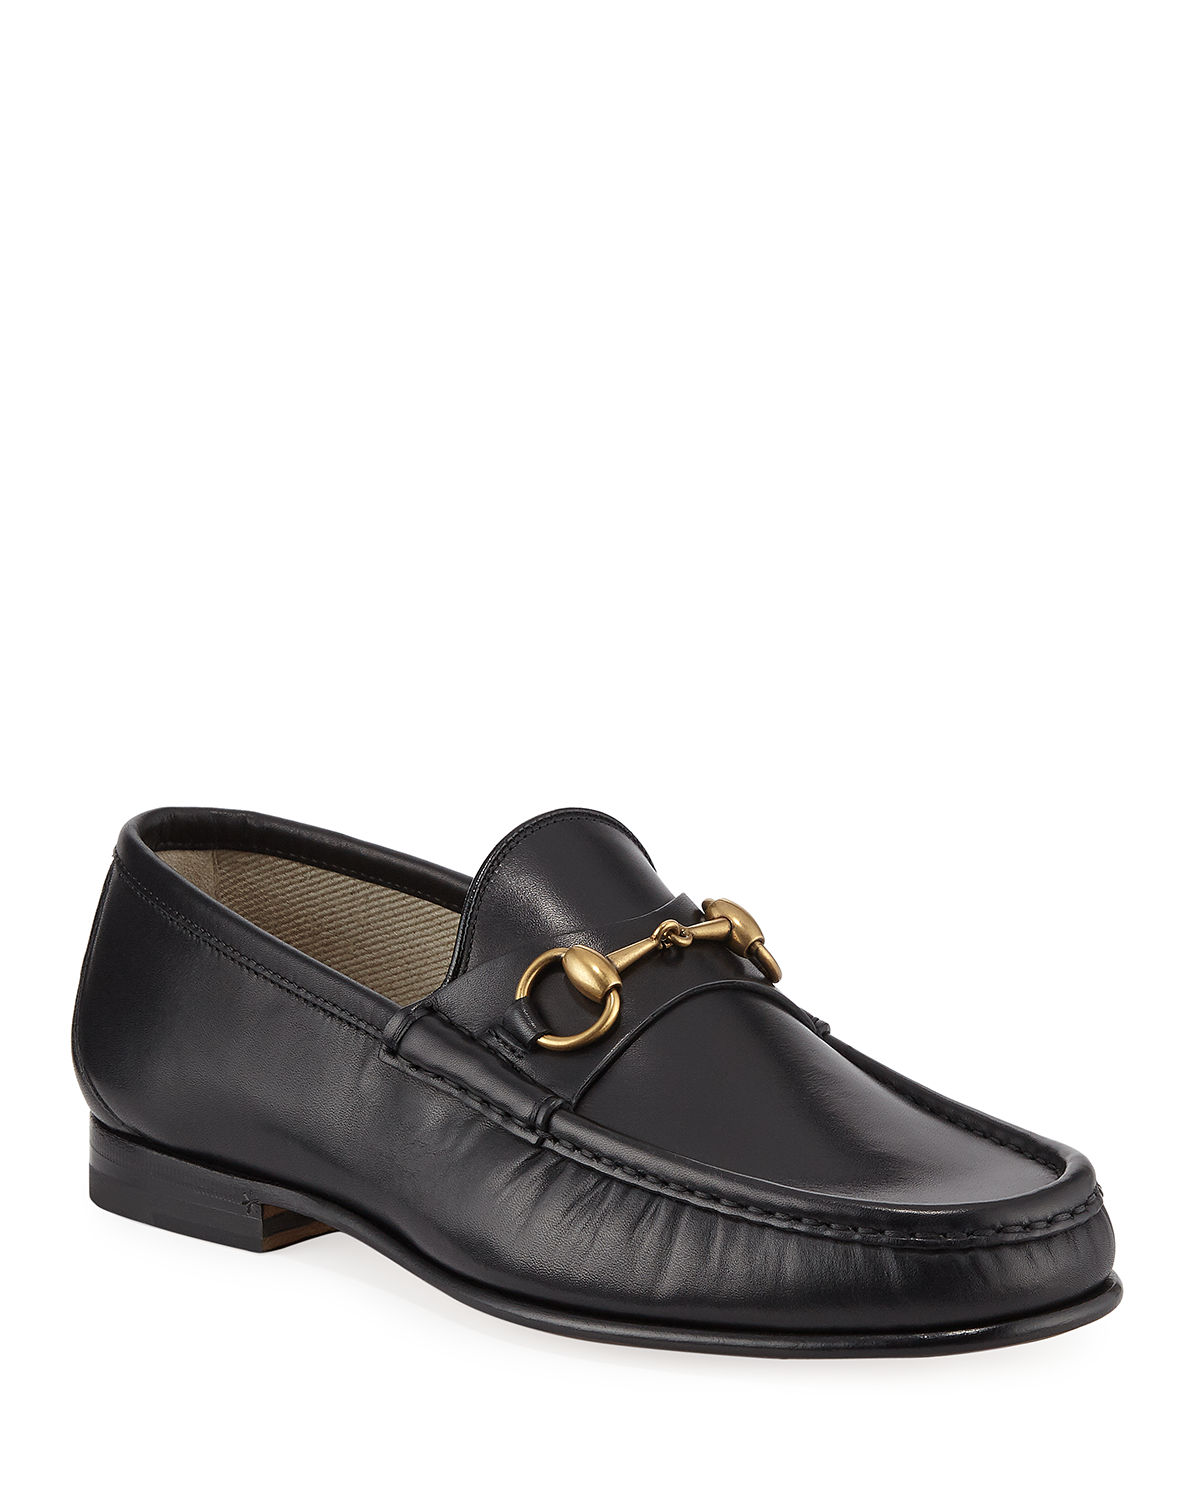 57683b74c Gucci Leather Horsebit Loafer